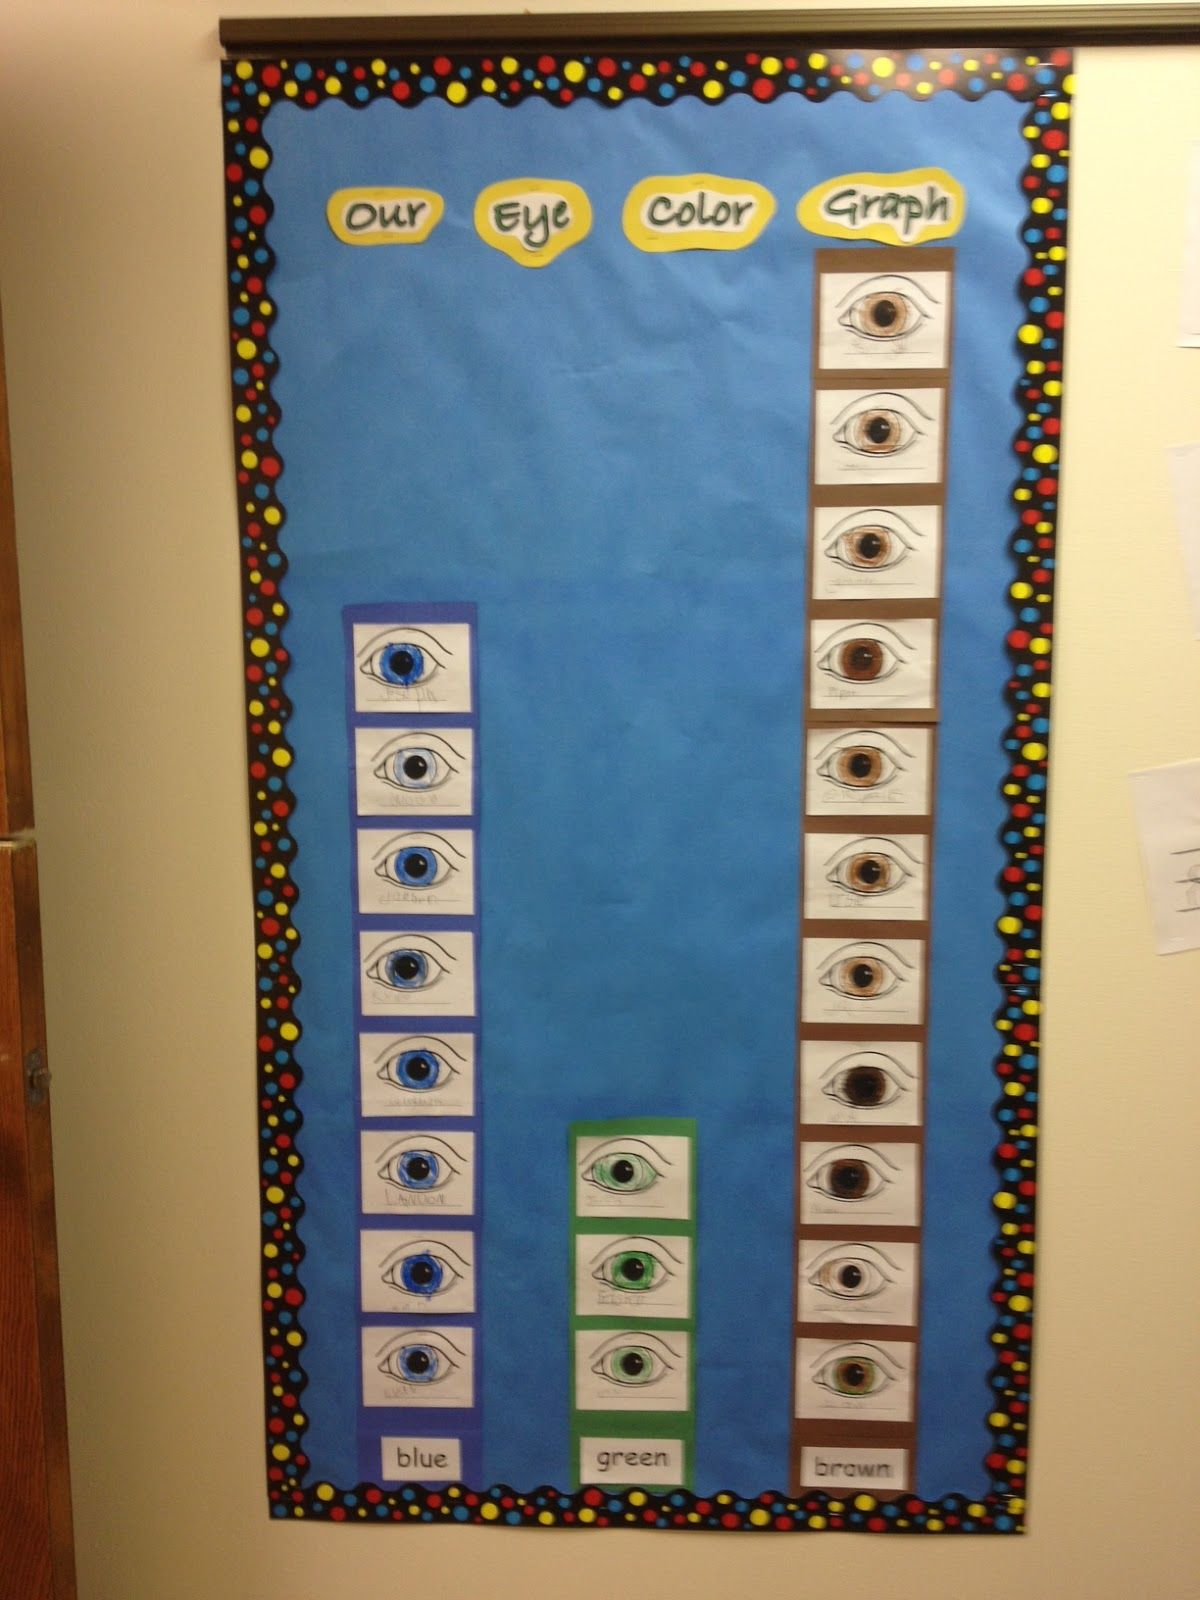 Preschool Eye Color Graph